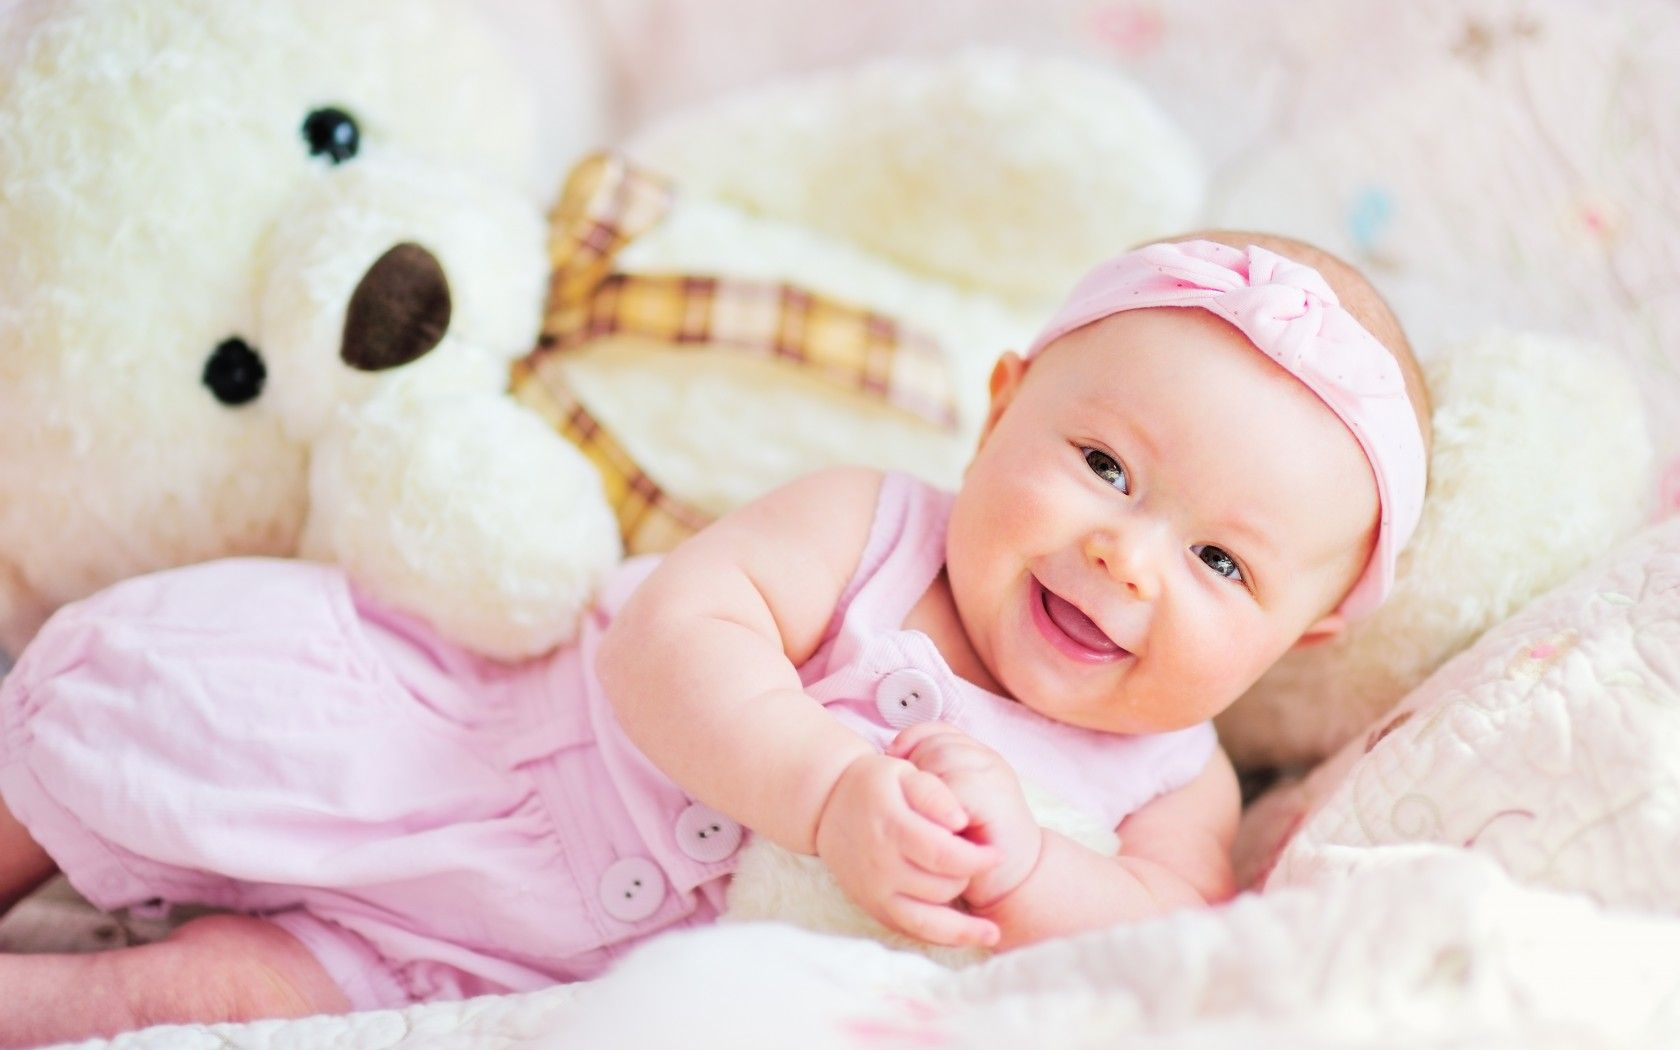 Click Here To Download In HD Format Cute Baby Wallpapers 53